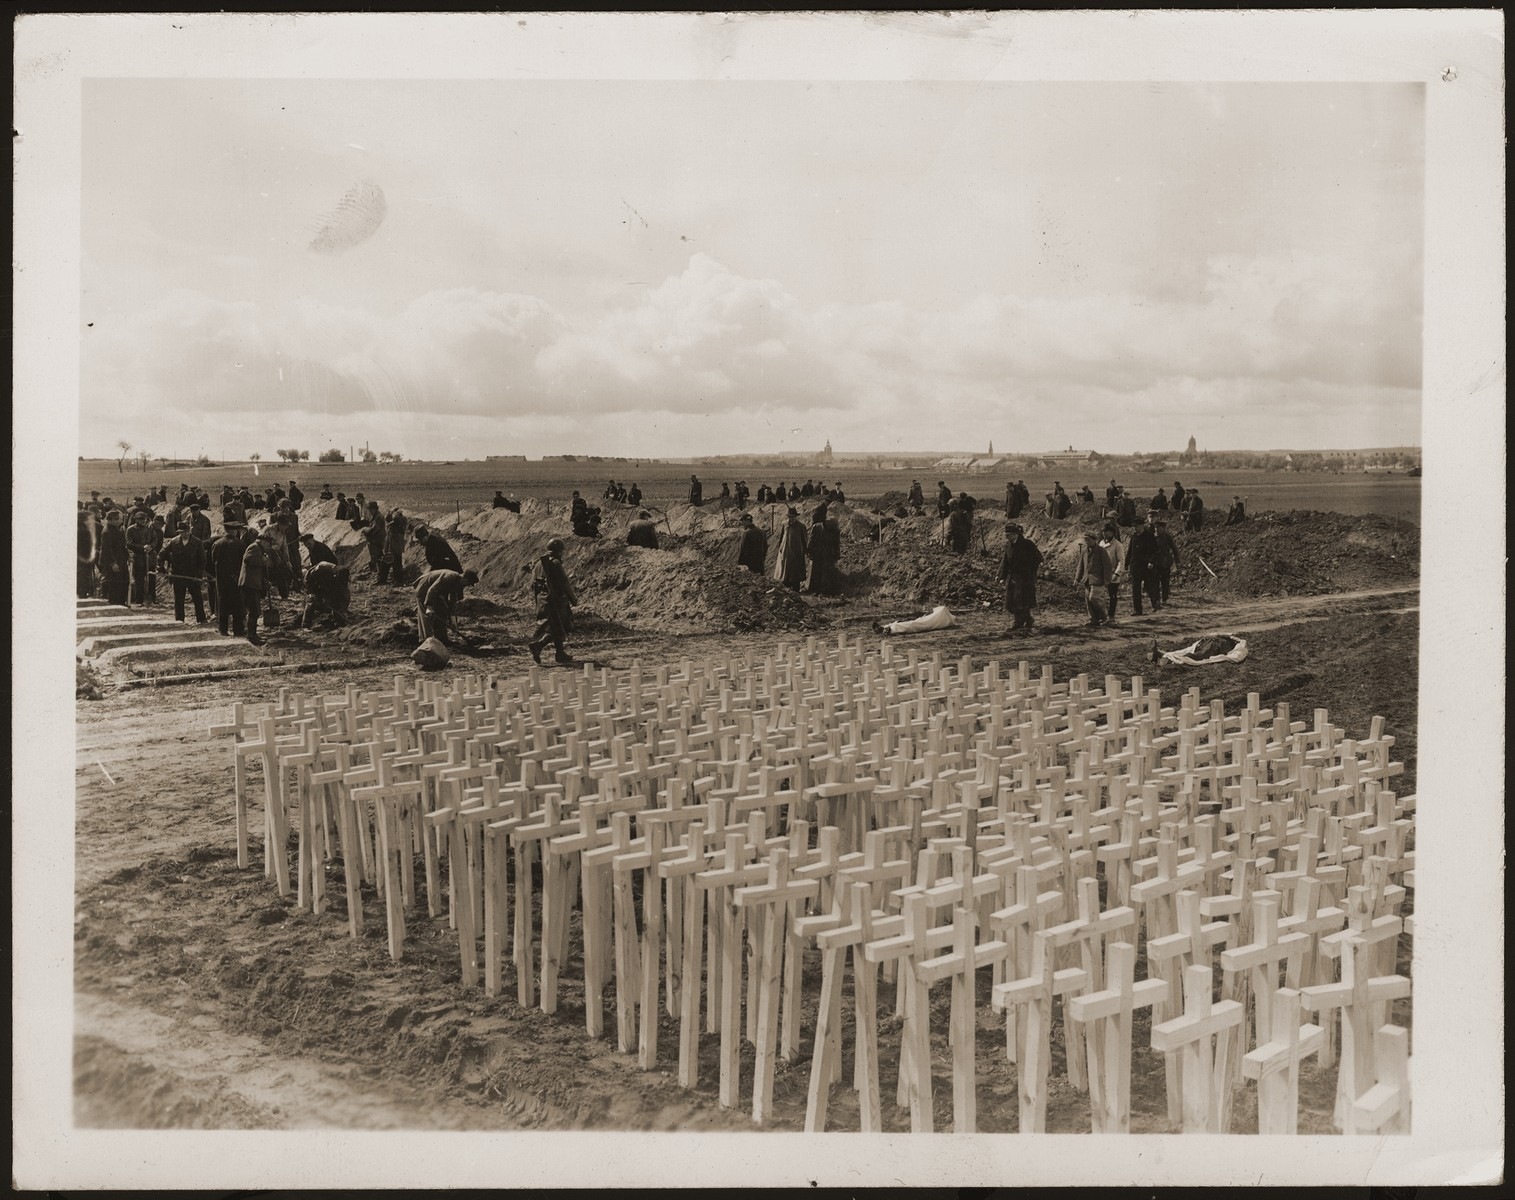 Under the supervision of American soldiers, German civilians dig graves for the bodies of concentration camp prisoners killed by the SS in a barn just outside of Gardelegen.  In the foreground are grave markers that will be placed on the graves.